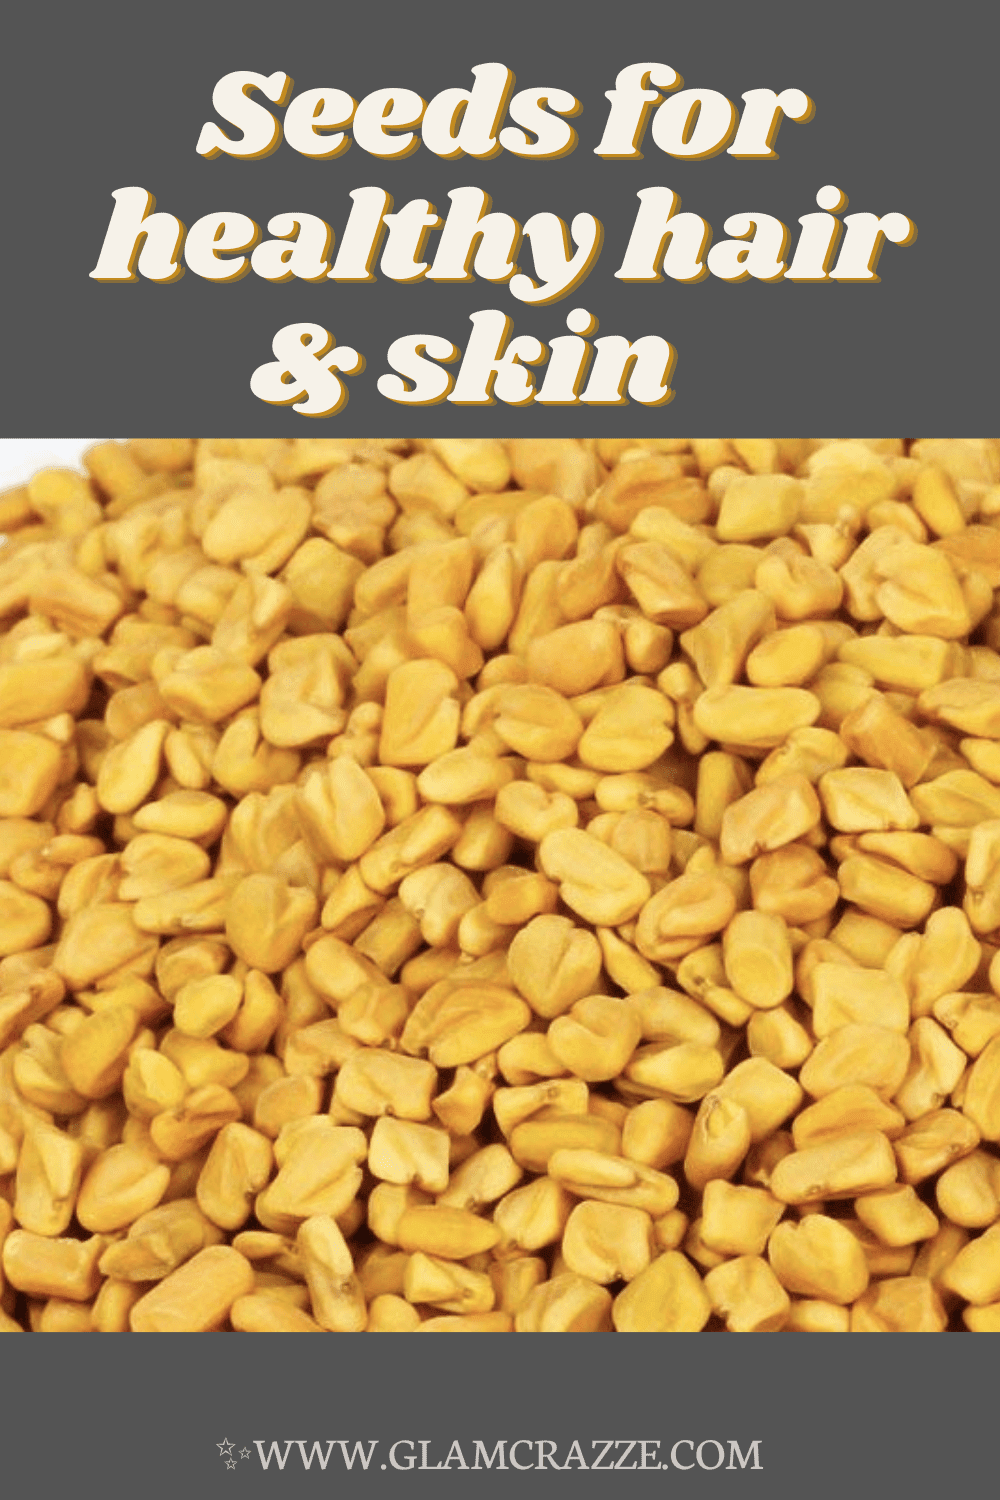 Fenugreek seeds for healthy hair